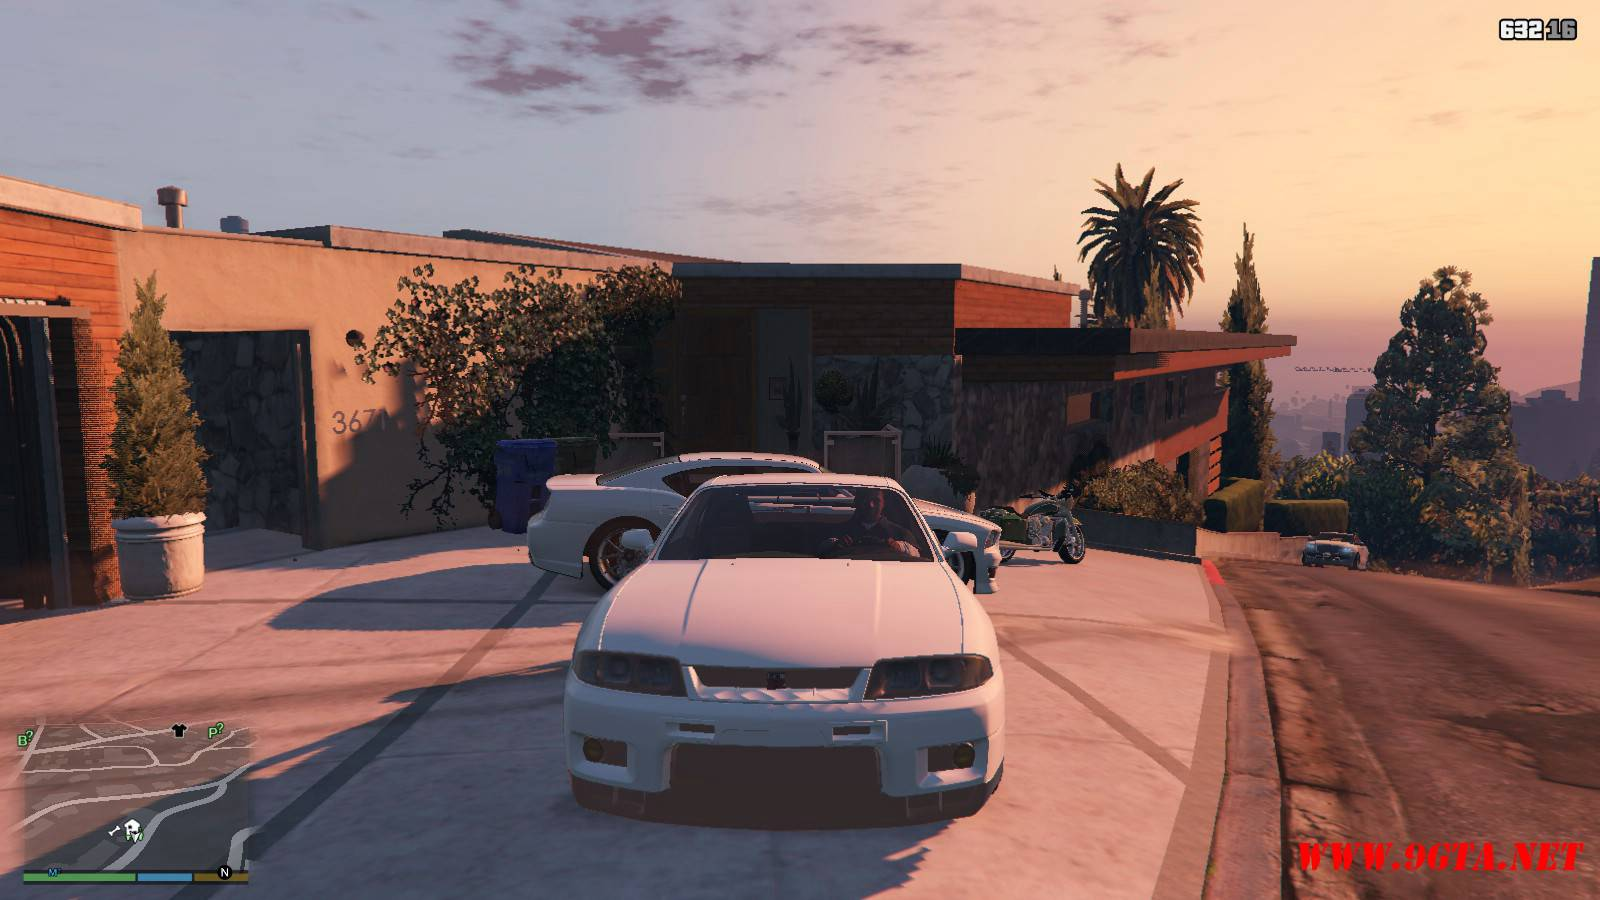 1996 Nissan Skyline GT-R R33 Mod For GTA5 (9)